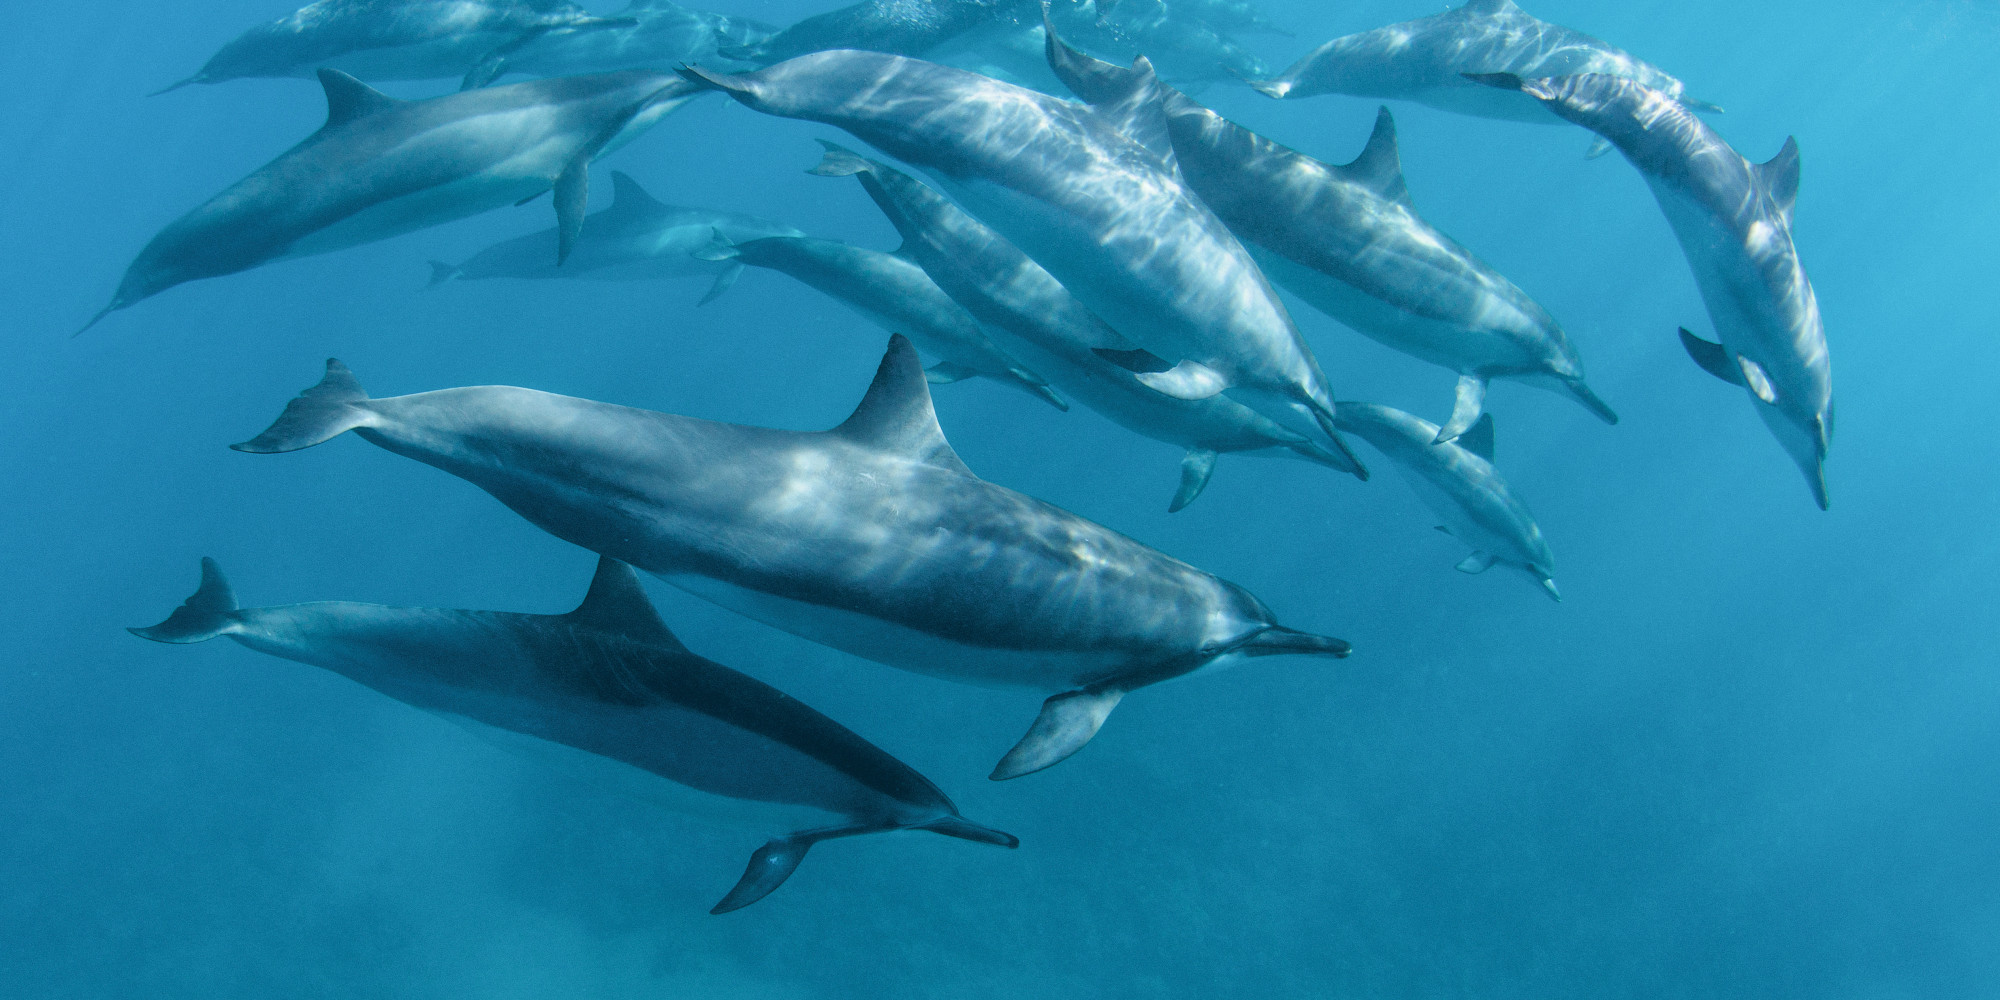 Cute Dolphin Drawing Wallpaper Dolphins Form Complex Social Networks According To New